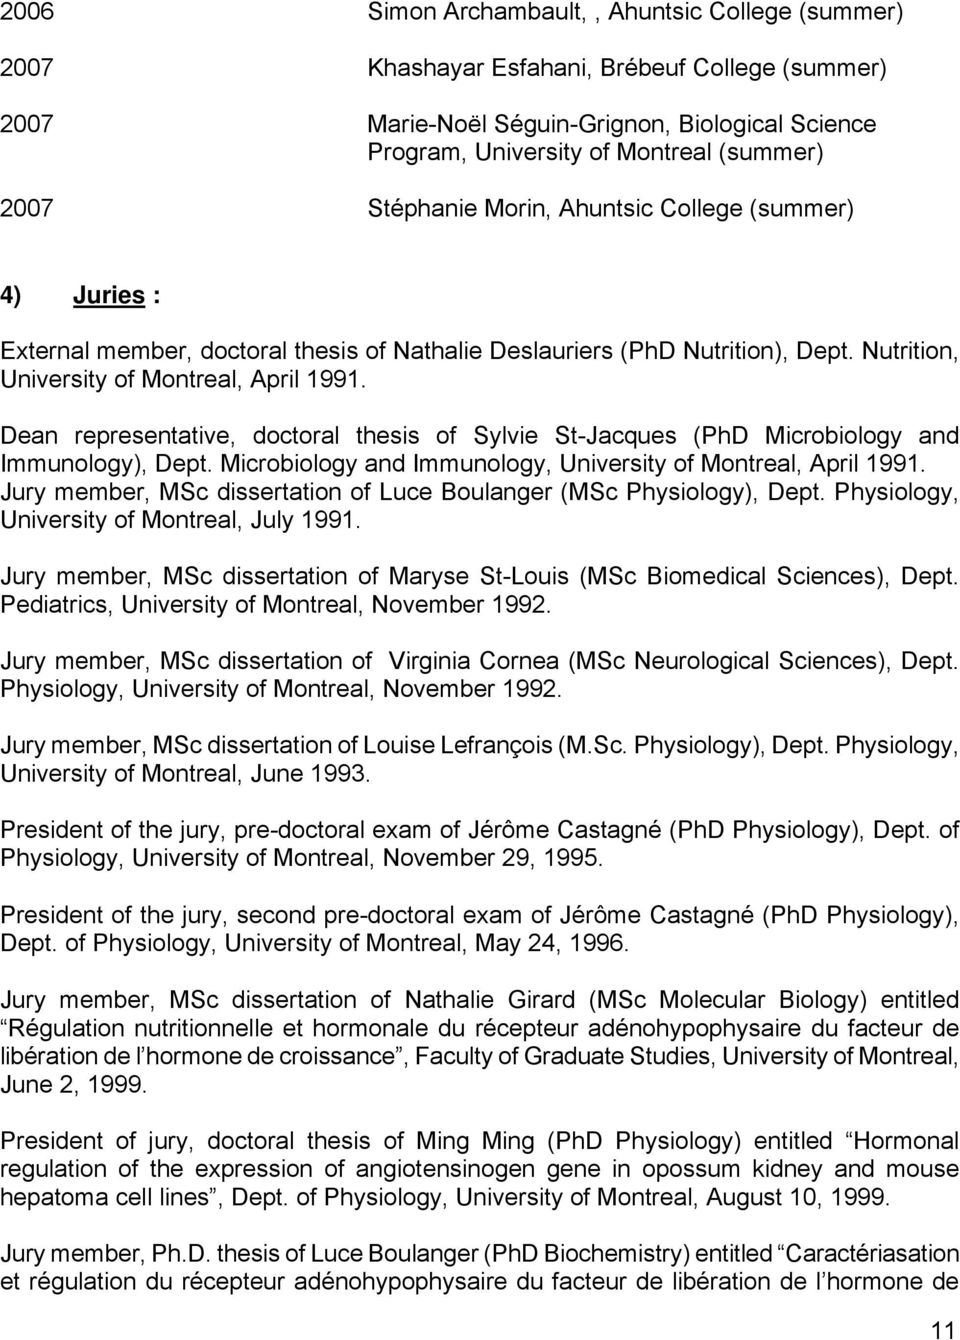 Dean representative, doctoral thesis of Sylvie St-Jacques (PhD Microbiology and Immunology), Dept. Microbiology and Immunology, University of Montreal, April 1991.